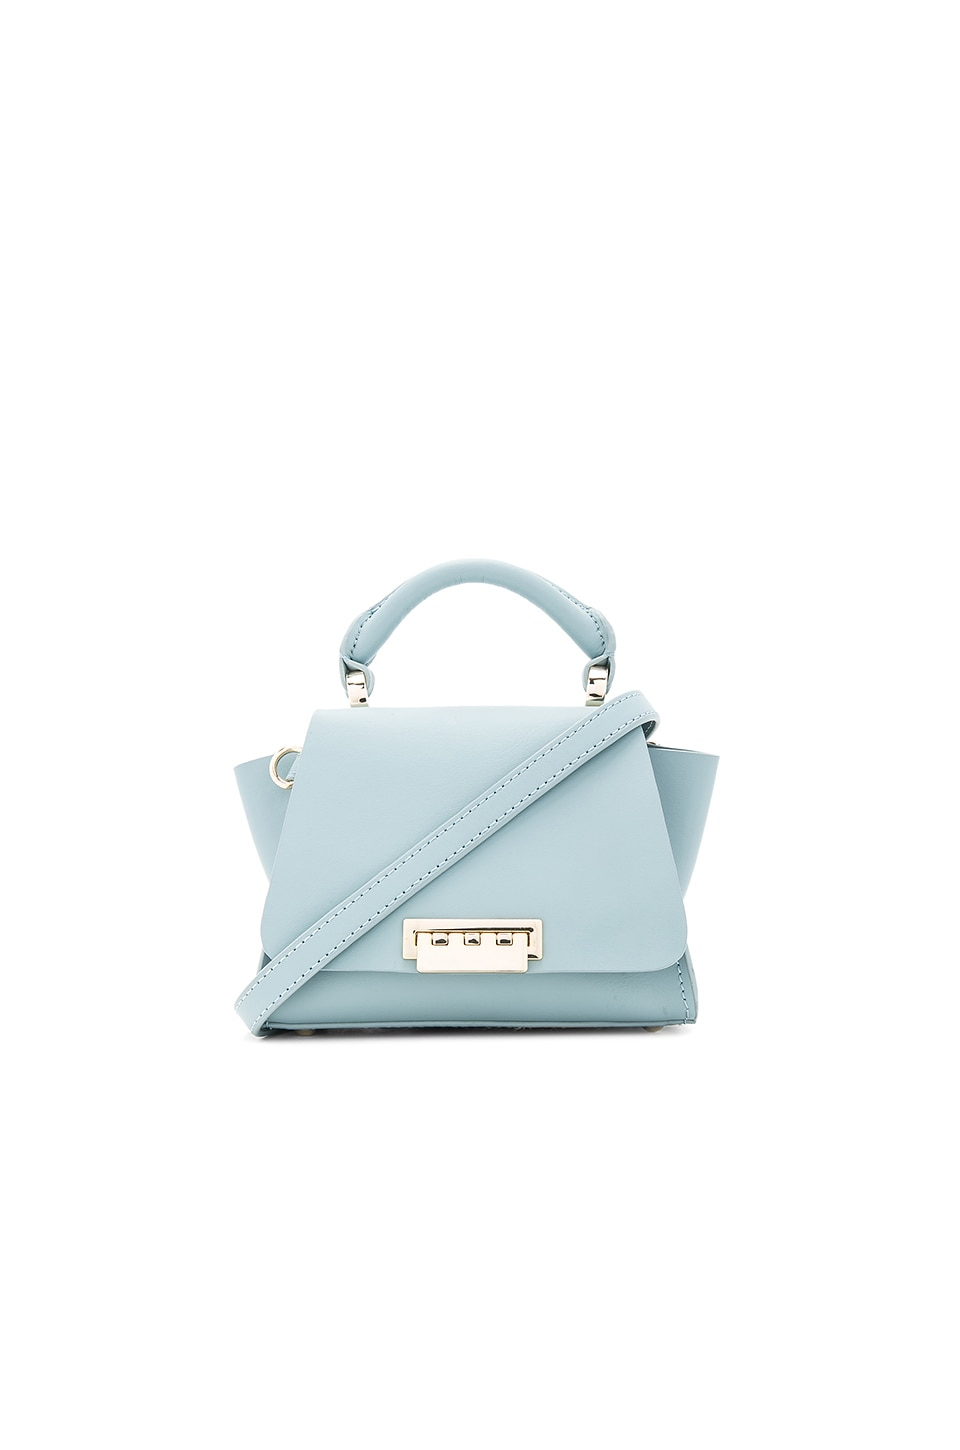 Zac Zac Posen Eartha Mini Crossbody in Sea Breeze